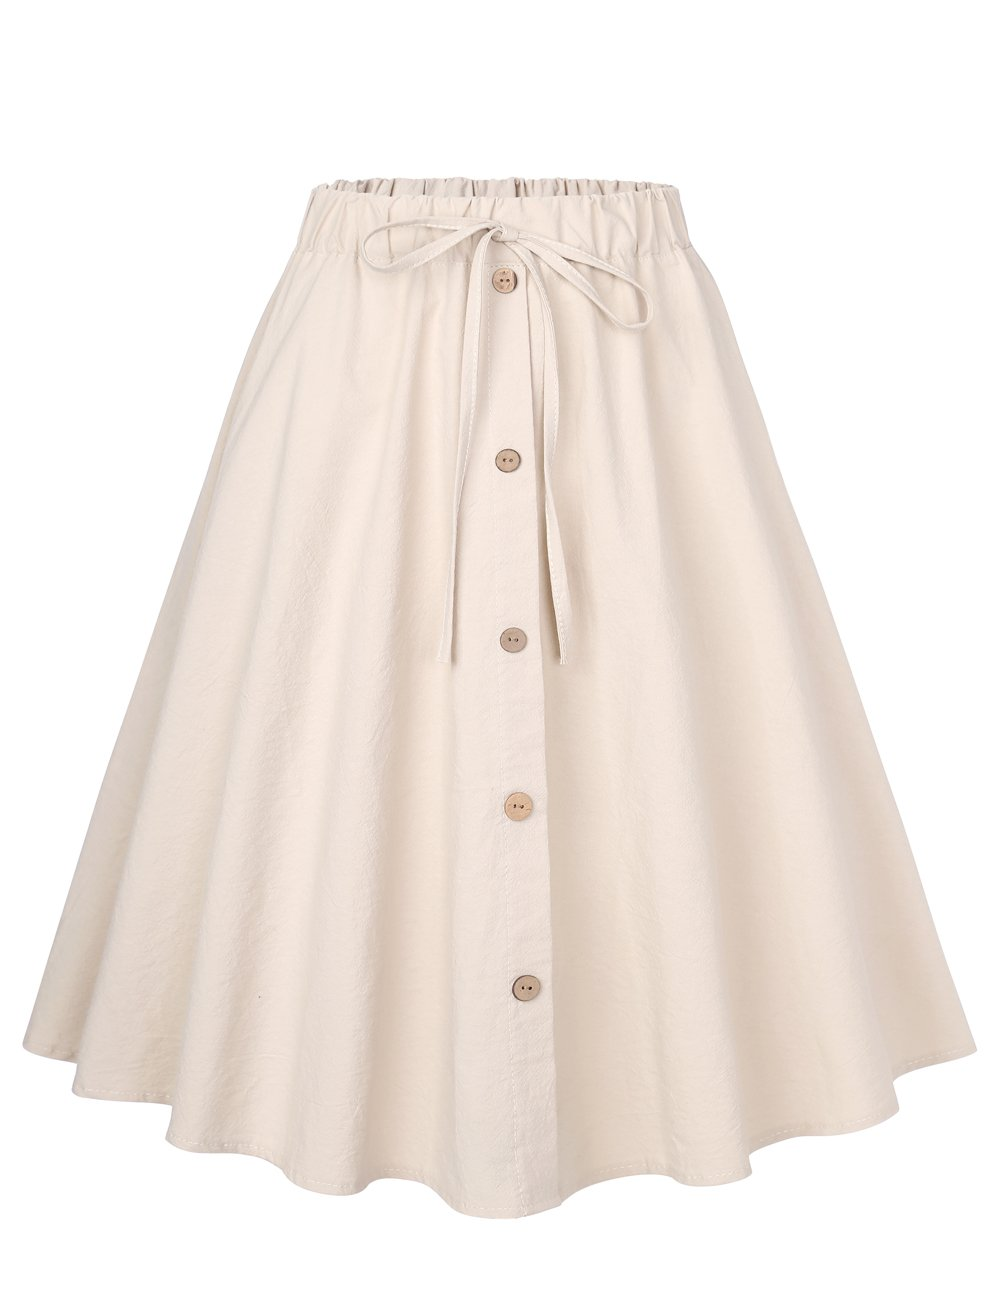 BaiShengGT Casual Skirts for Women, Women's A-Line High Waisted Button Front Pleated Midi Skirt with Elastic Waist Knee Length One Size(fit S-M) Apricot-False Drawstring by BaiShengGT (Image #1)